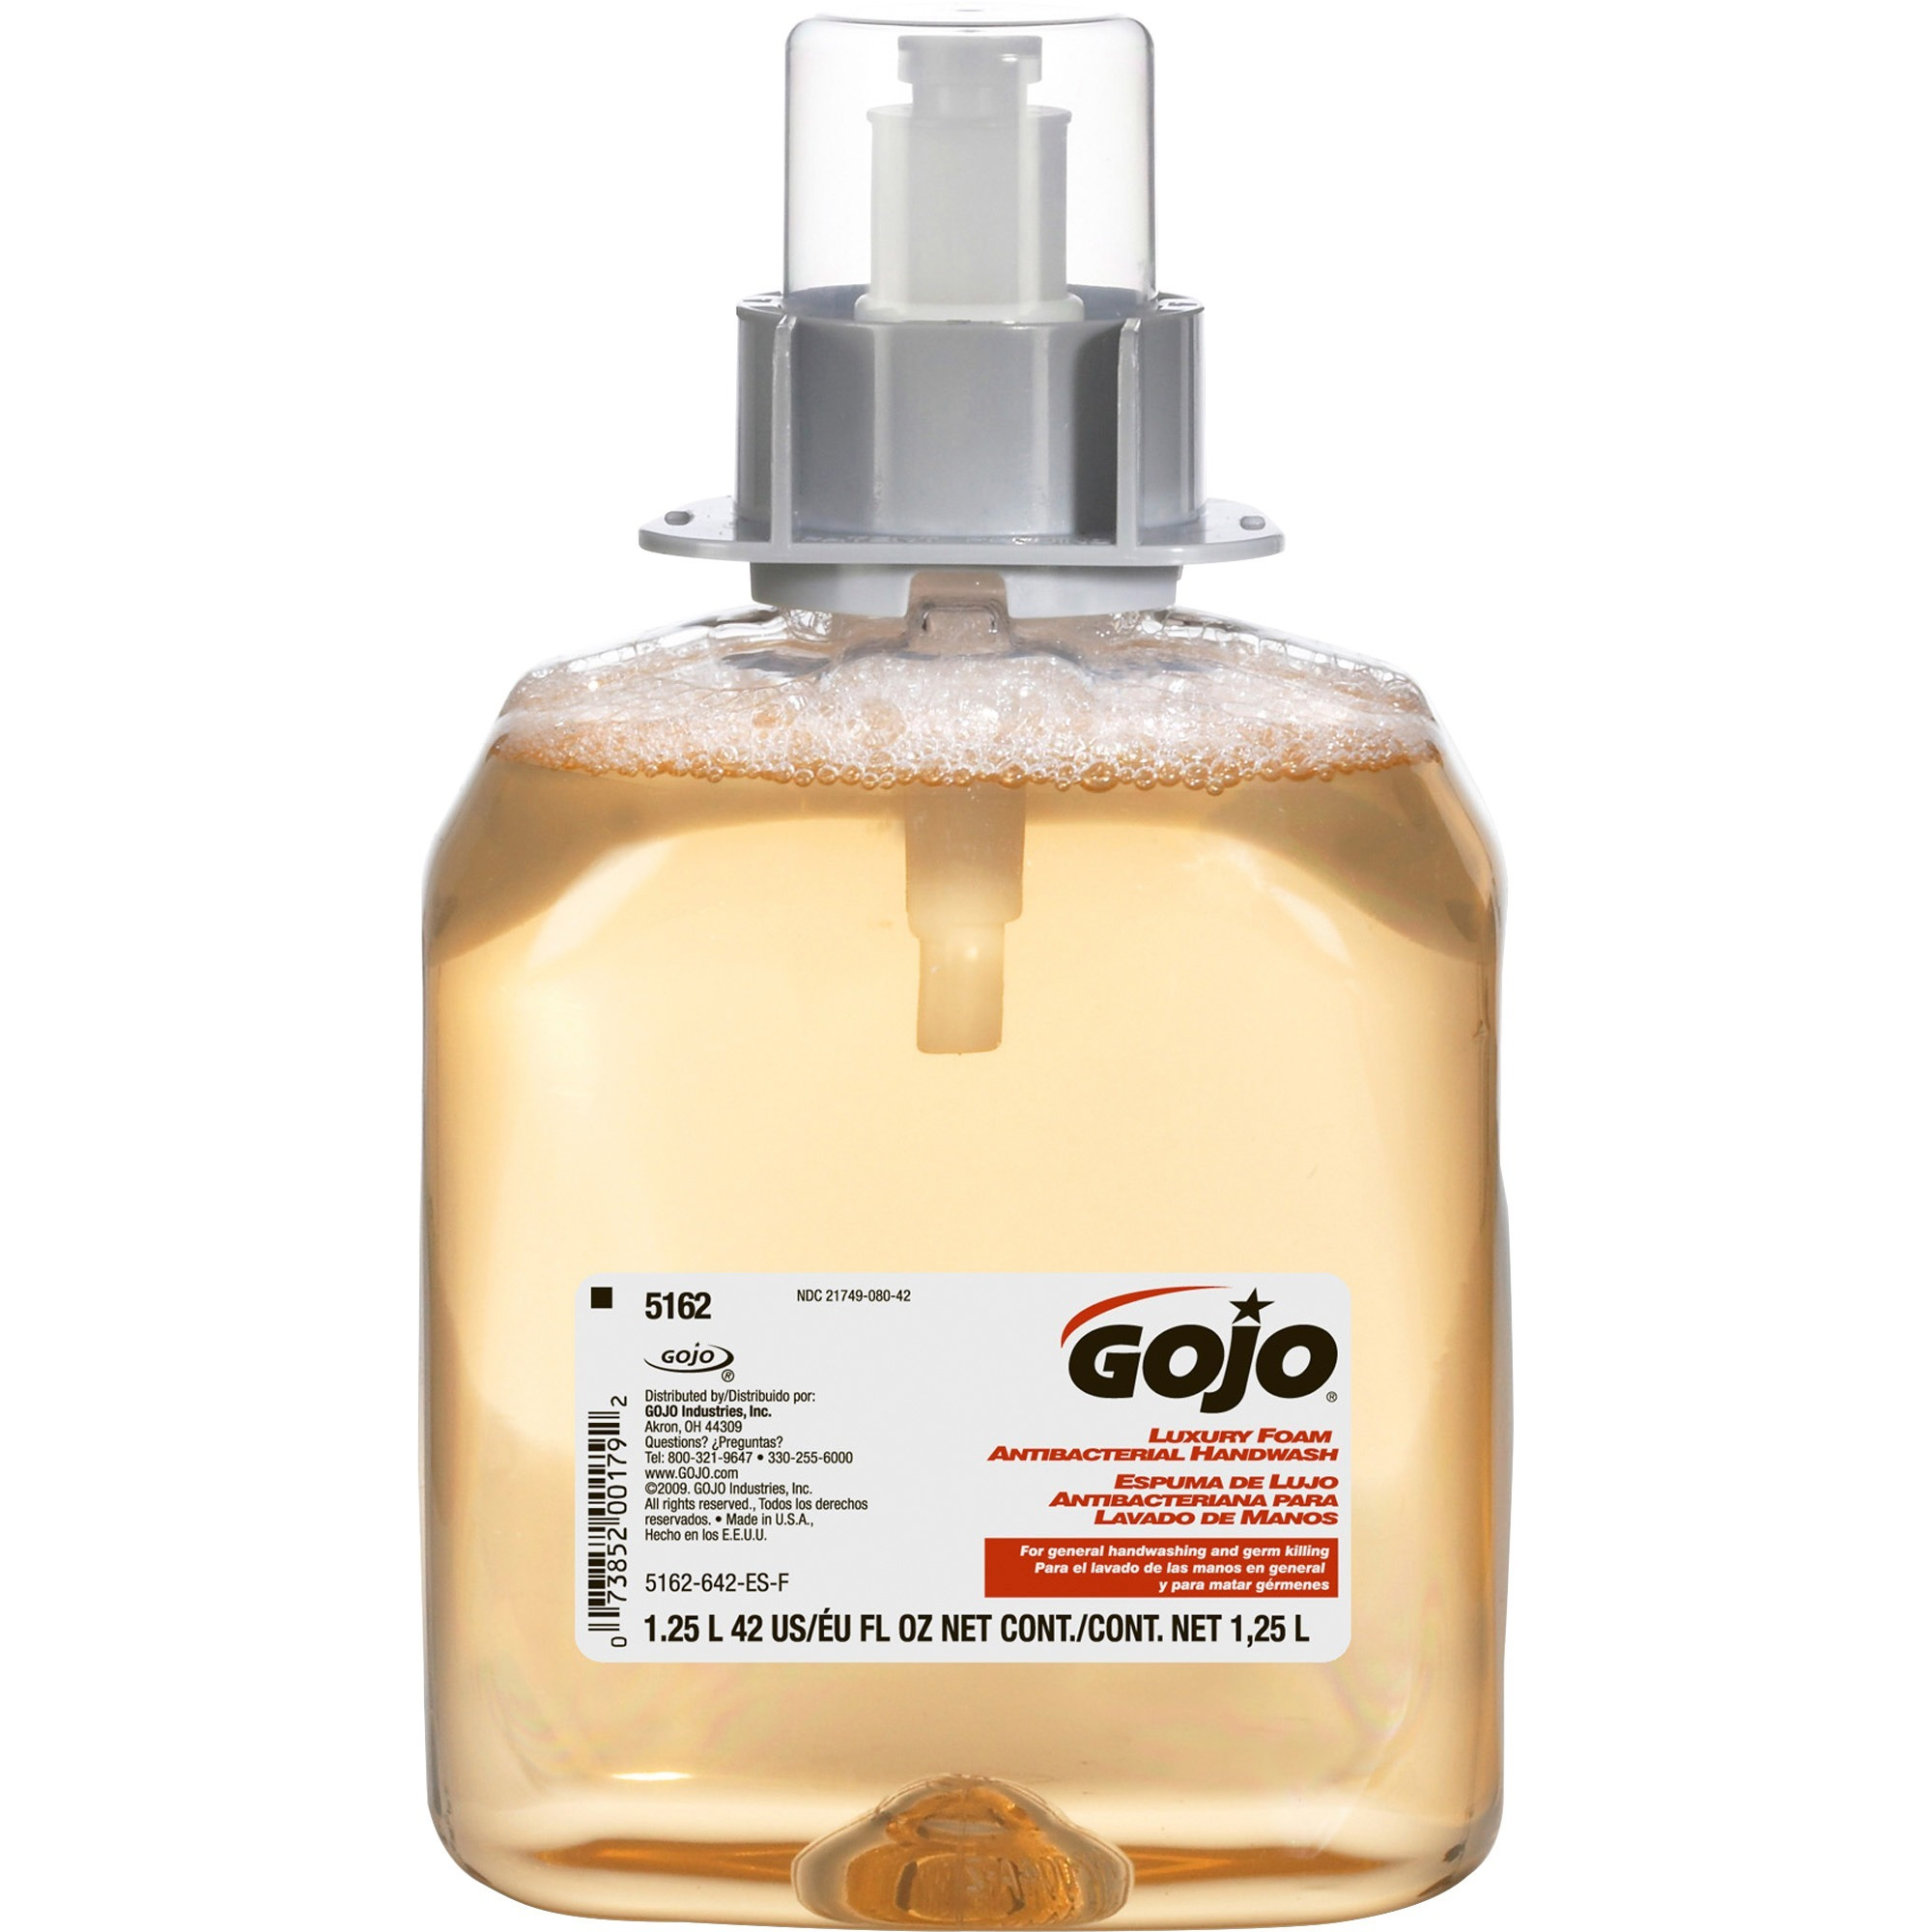 Gojo, GOJ516203CT, FMX-12 Antibact Orange Foaming Soap Refill, 3 / Carton, Orange